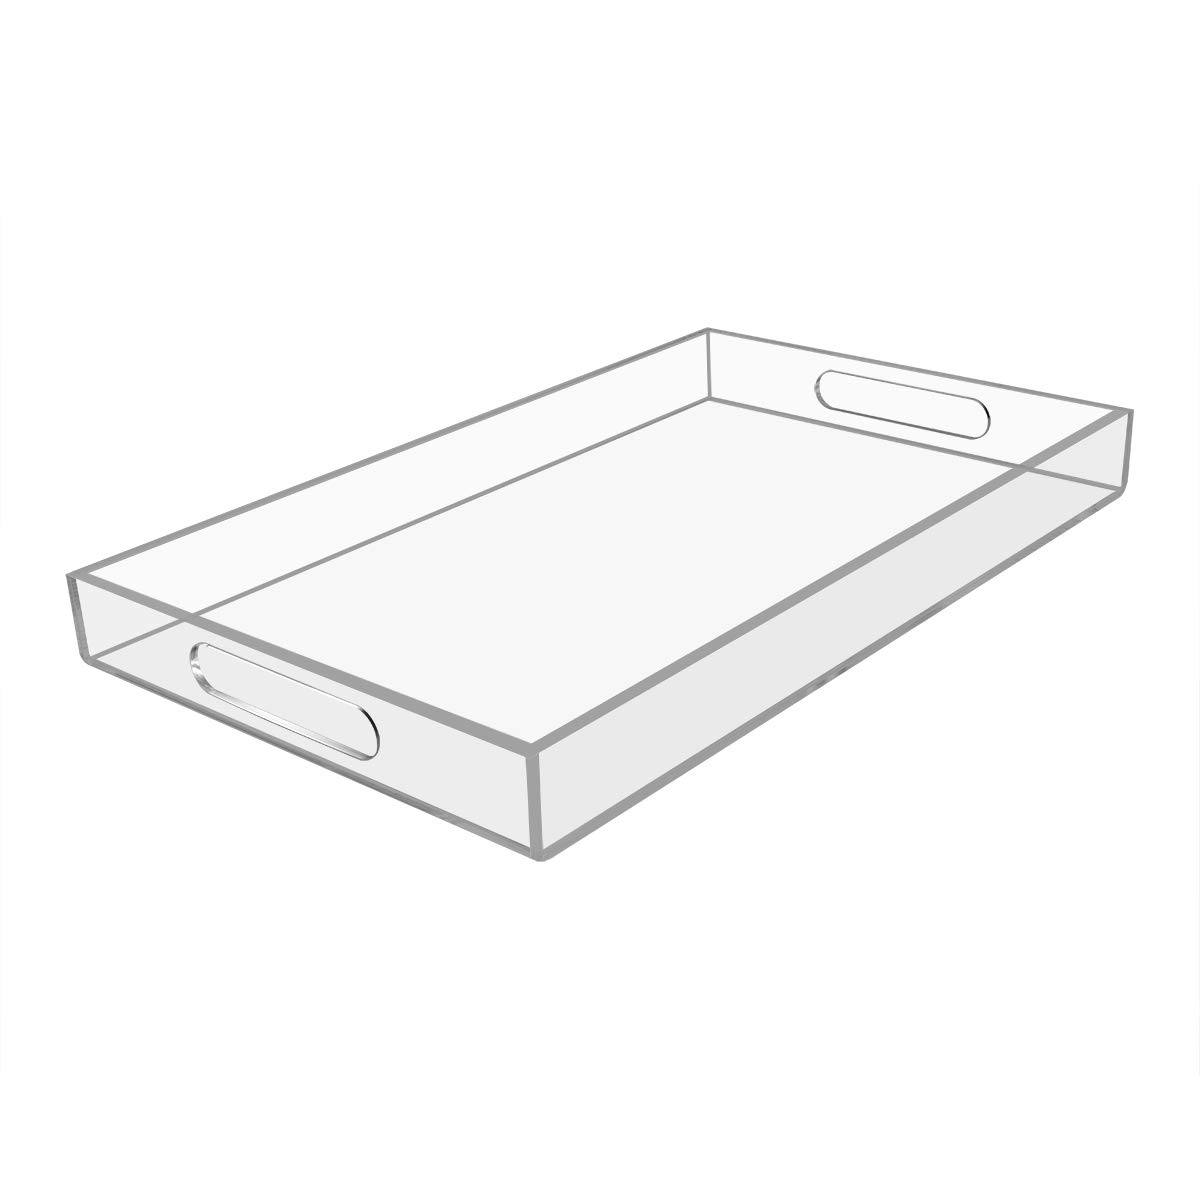 NIUBEE Acrylic Serving Tray 12''x20'' -Spill Proof- Clear Decorative Tray Organiser for Ottoman Coffee Table Countertop with Handles